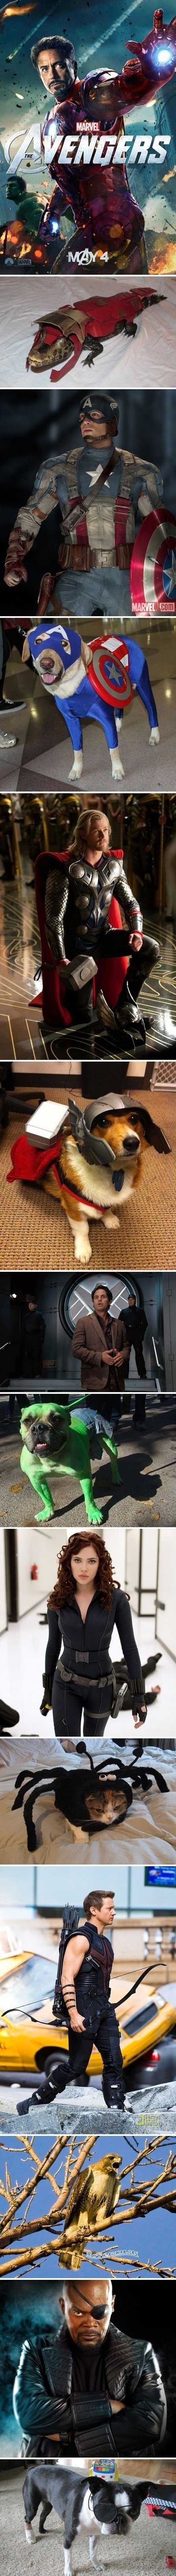 Avengers And Their Pets